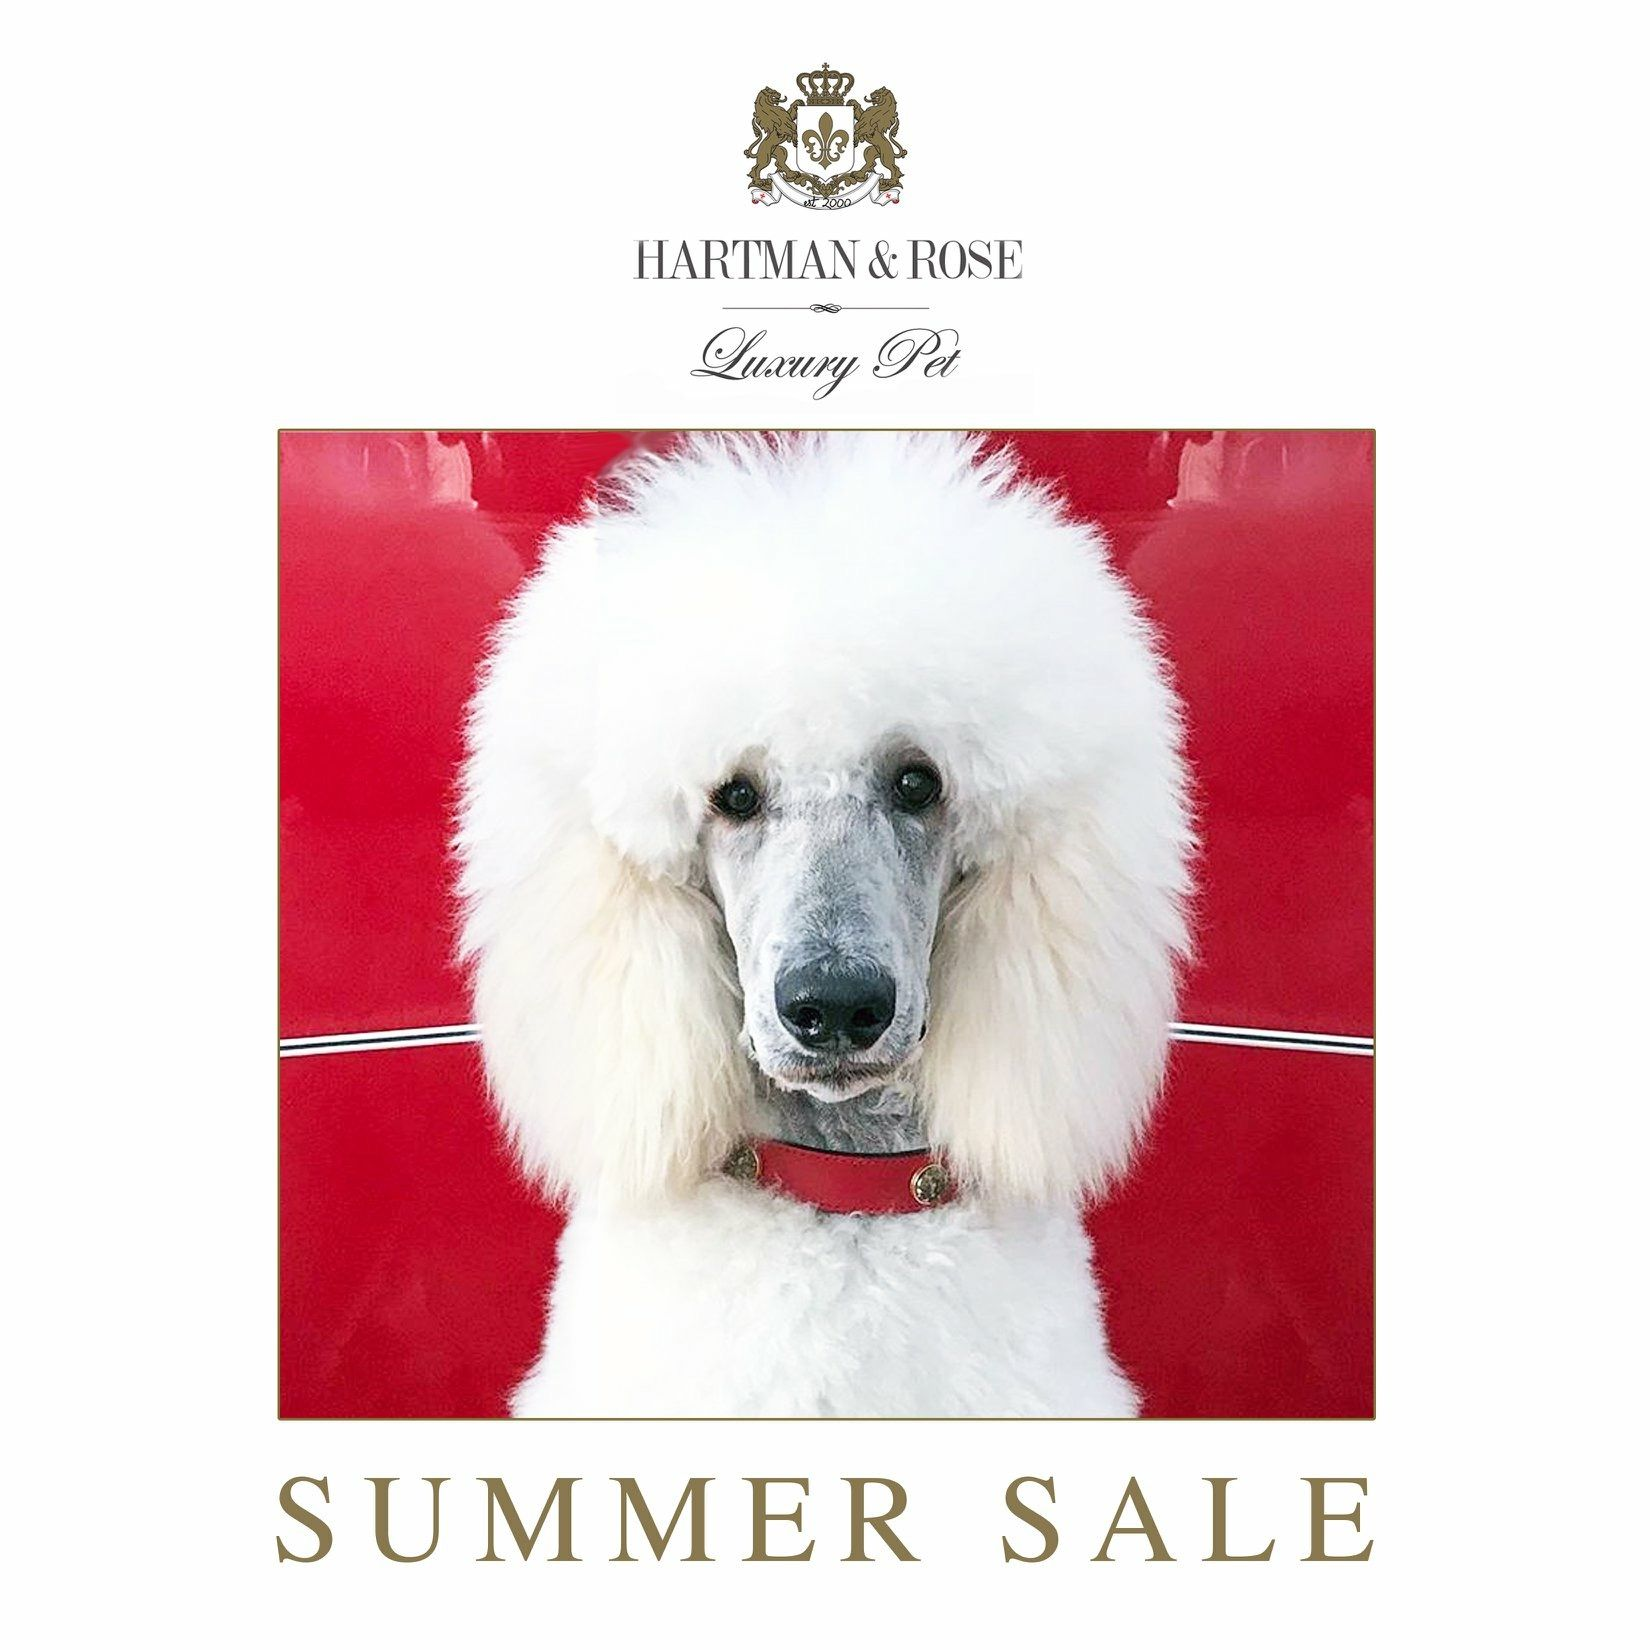 World's Finest Dog Collars & Leads SAVE 30% use code: CHRISTMAS.  www.hartmanandrose.com  @hartmanandrose #hartmanandrose. This is Duke the handsome Standard Poodle from Sydney, Australia wearing the Au Naturale collar in Ferrari Red with genuine Unikite stones. Duke is a Libra like me. @duke_thepoodle    Love Your Dog. Spread the Love ❤️